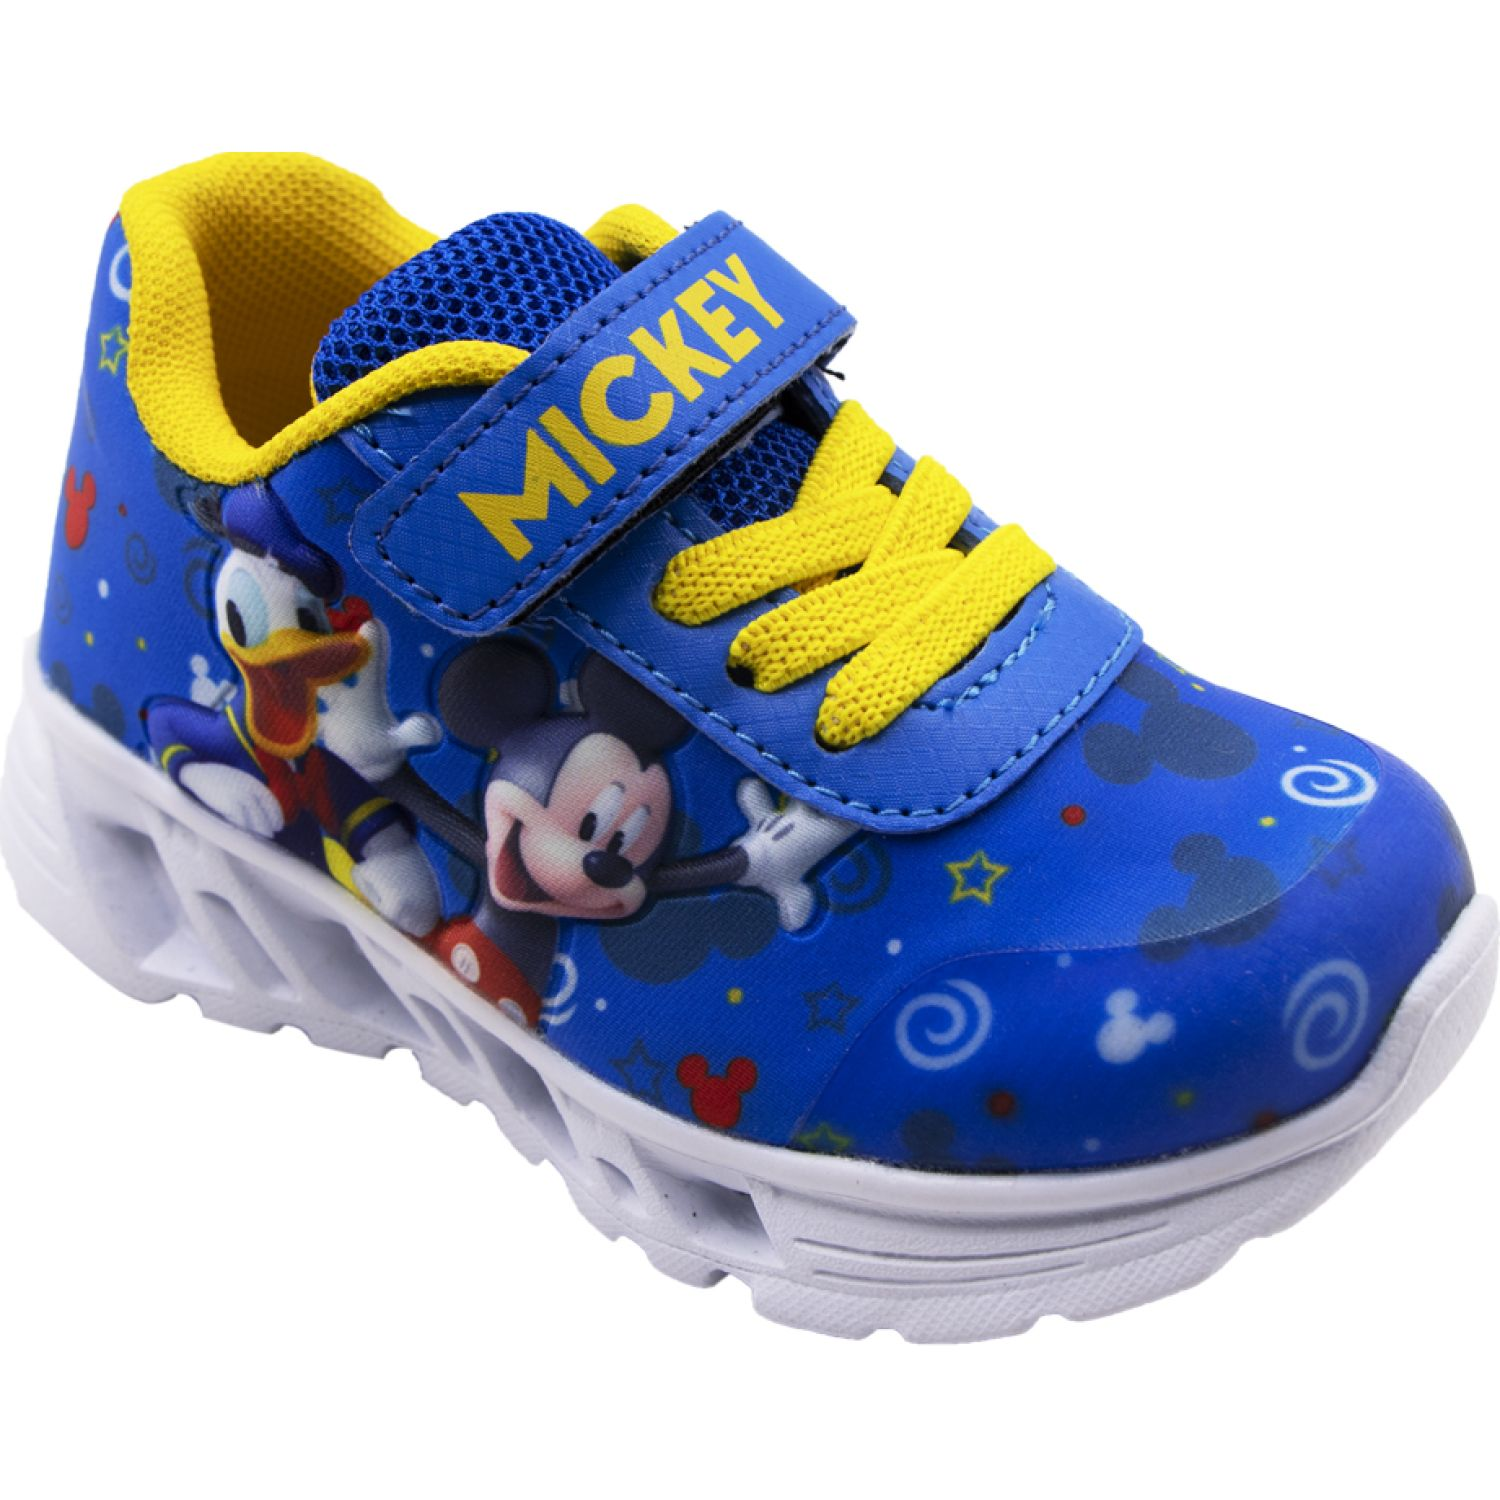 Mickey 2mczxv192 Azul / amarillo Walking